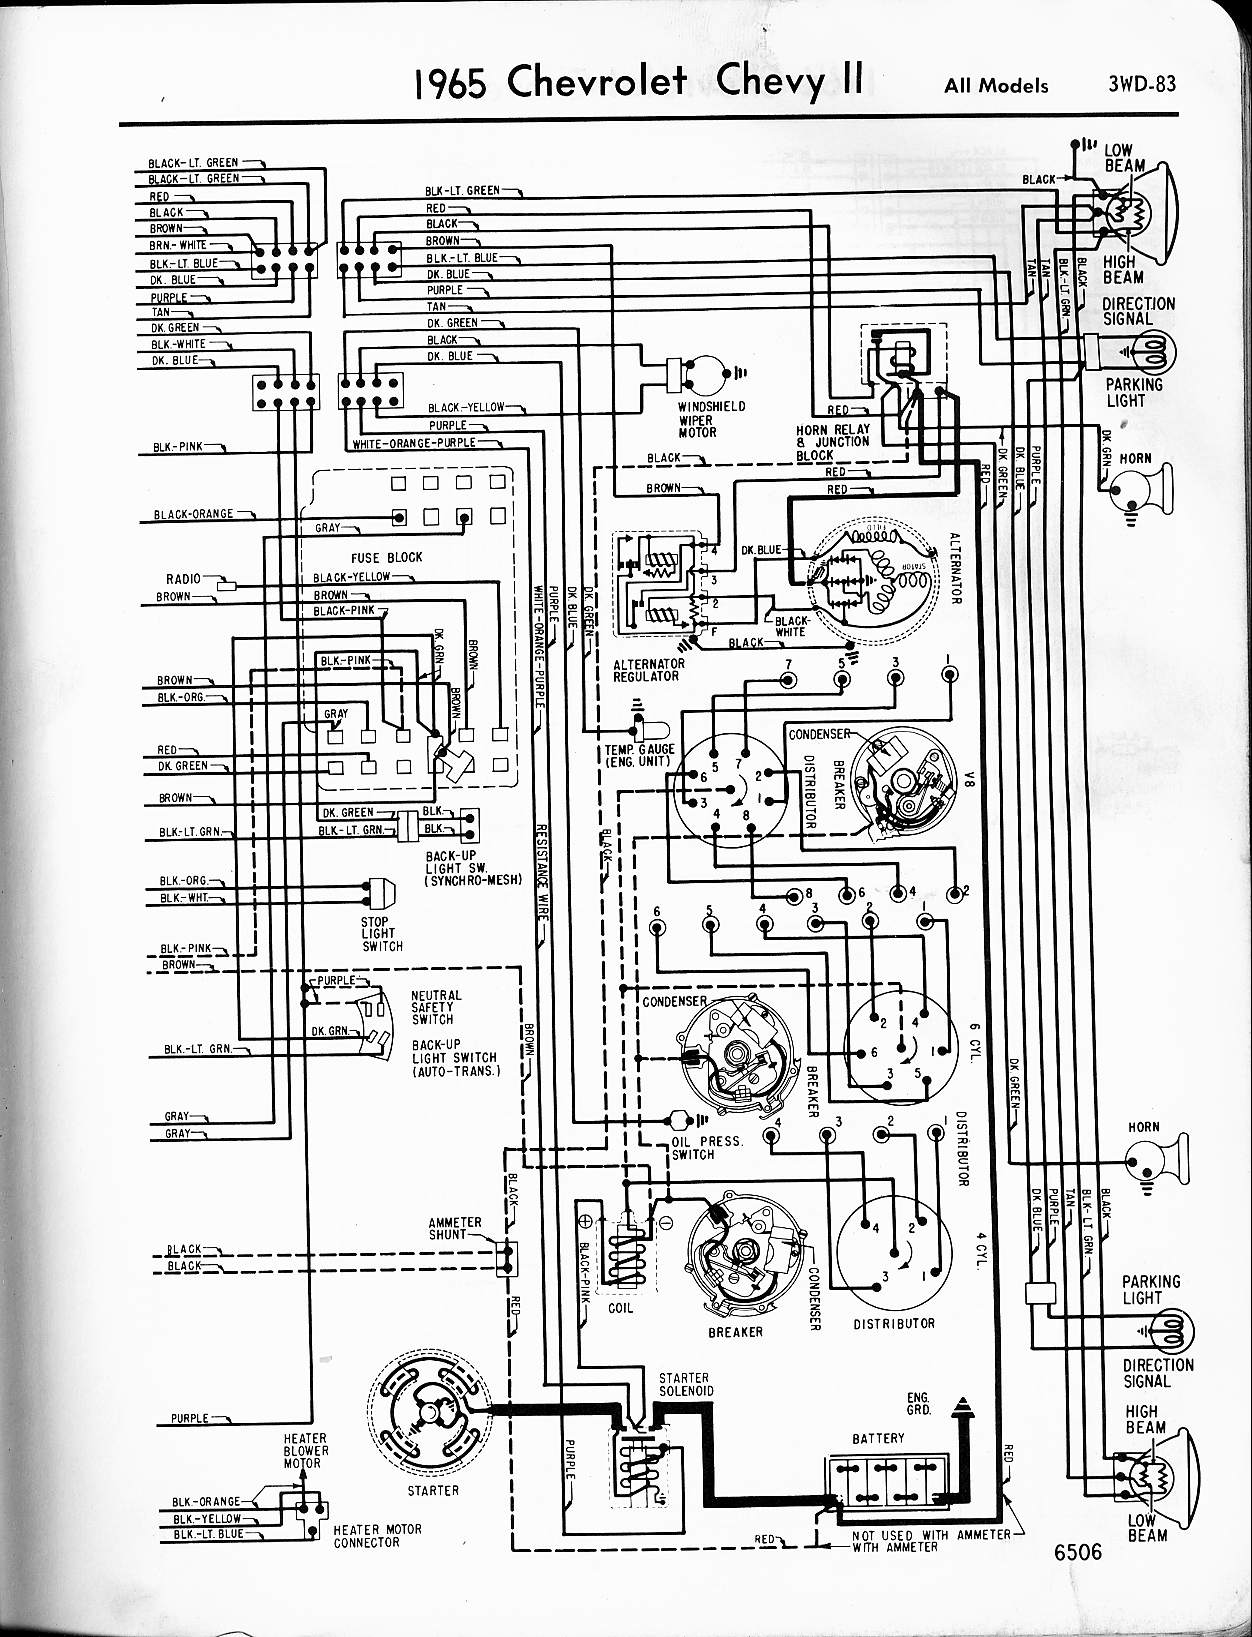 MWireChev65_3WD 083 1966 corvette wiring diagram 1966 corvette headlight wiring 1966 ford truck wiring diagram at crackthecode.co